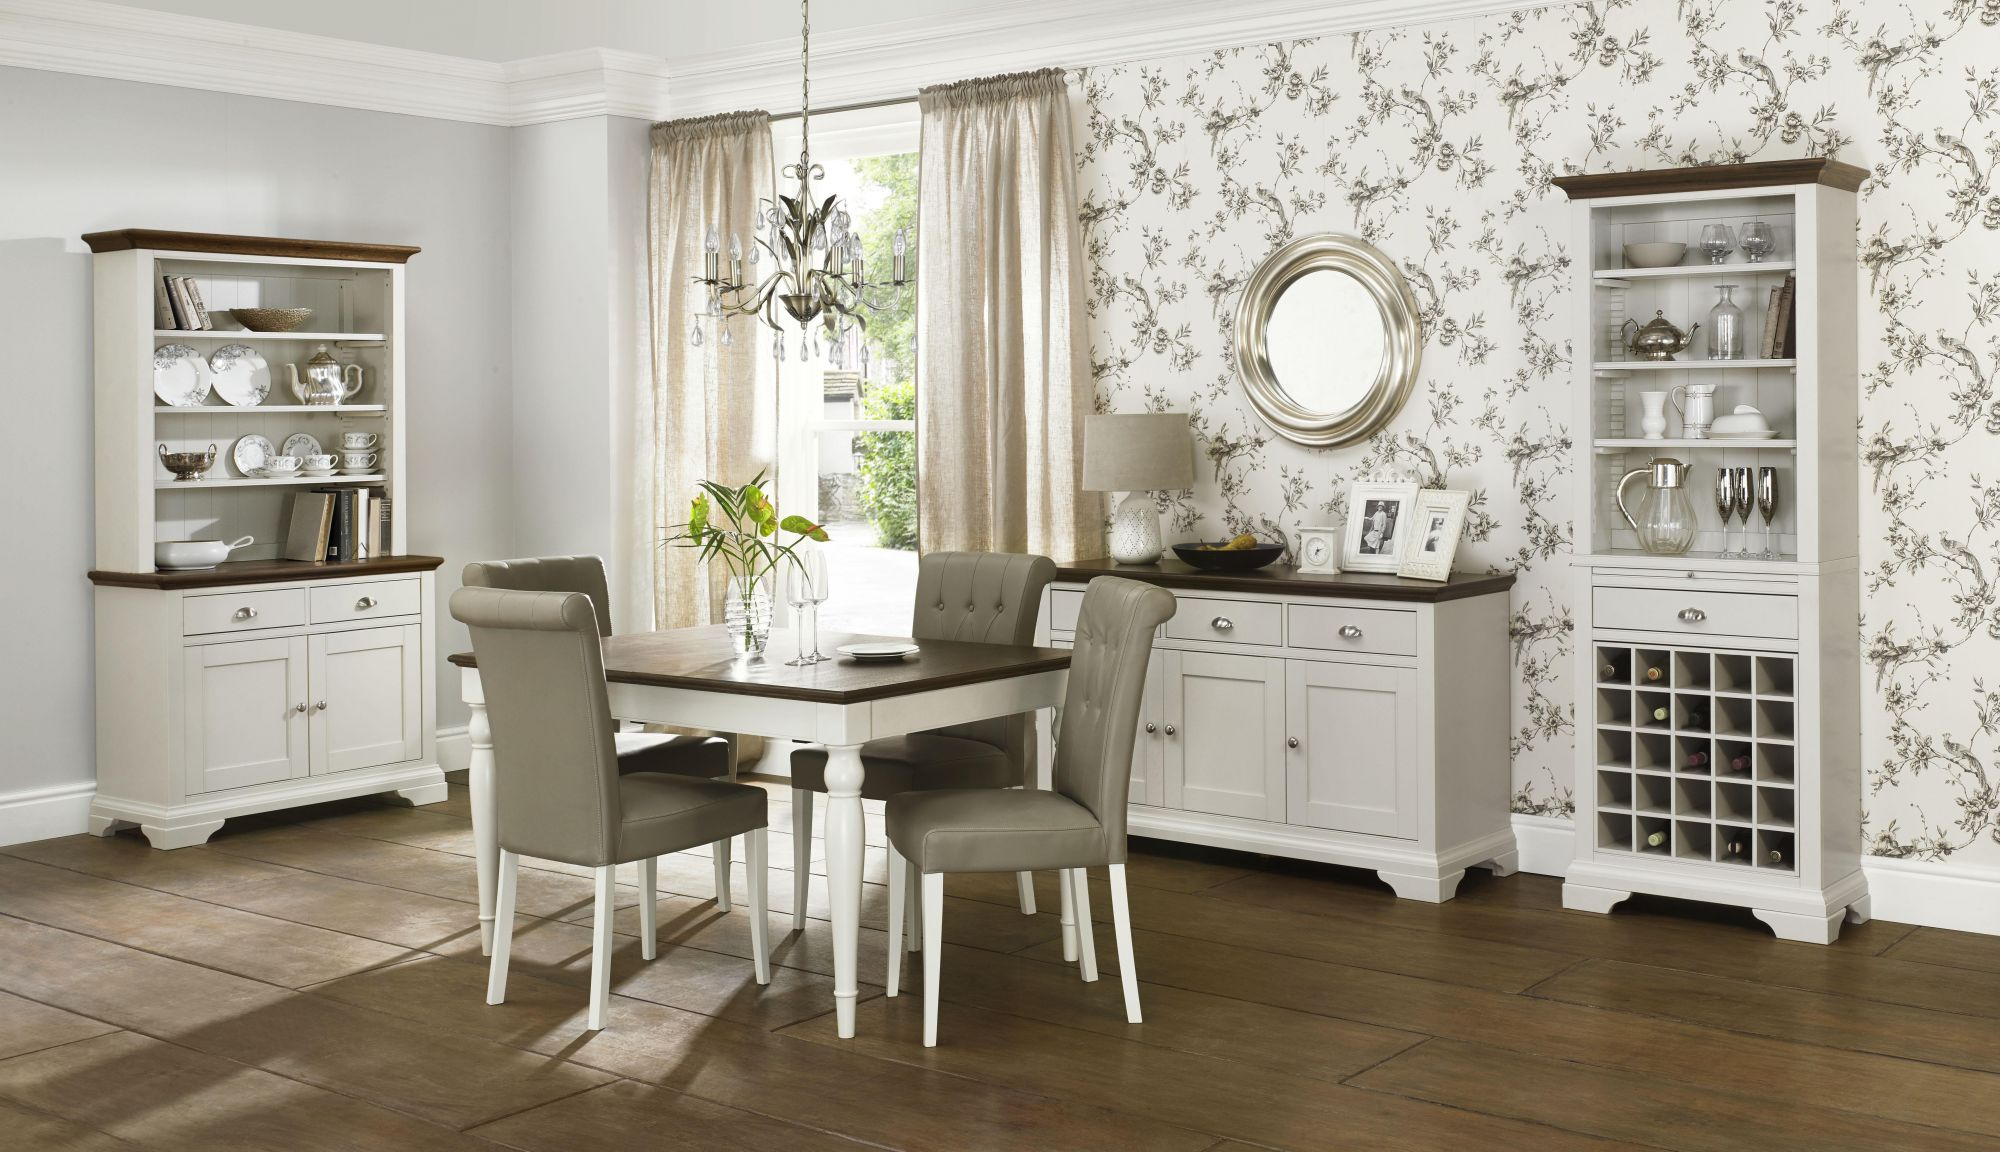 Bentley Designs Hampstead Soft Grey Walnut 6 8 Table Olive Chairs GBP166995 Beatrice Oak Dining With Strip And Leather Ch